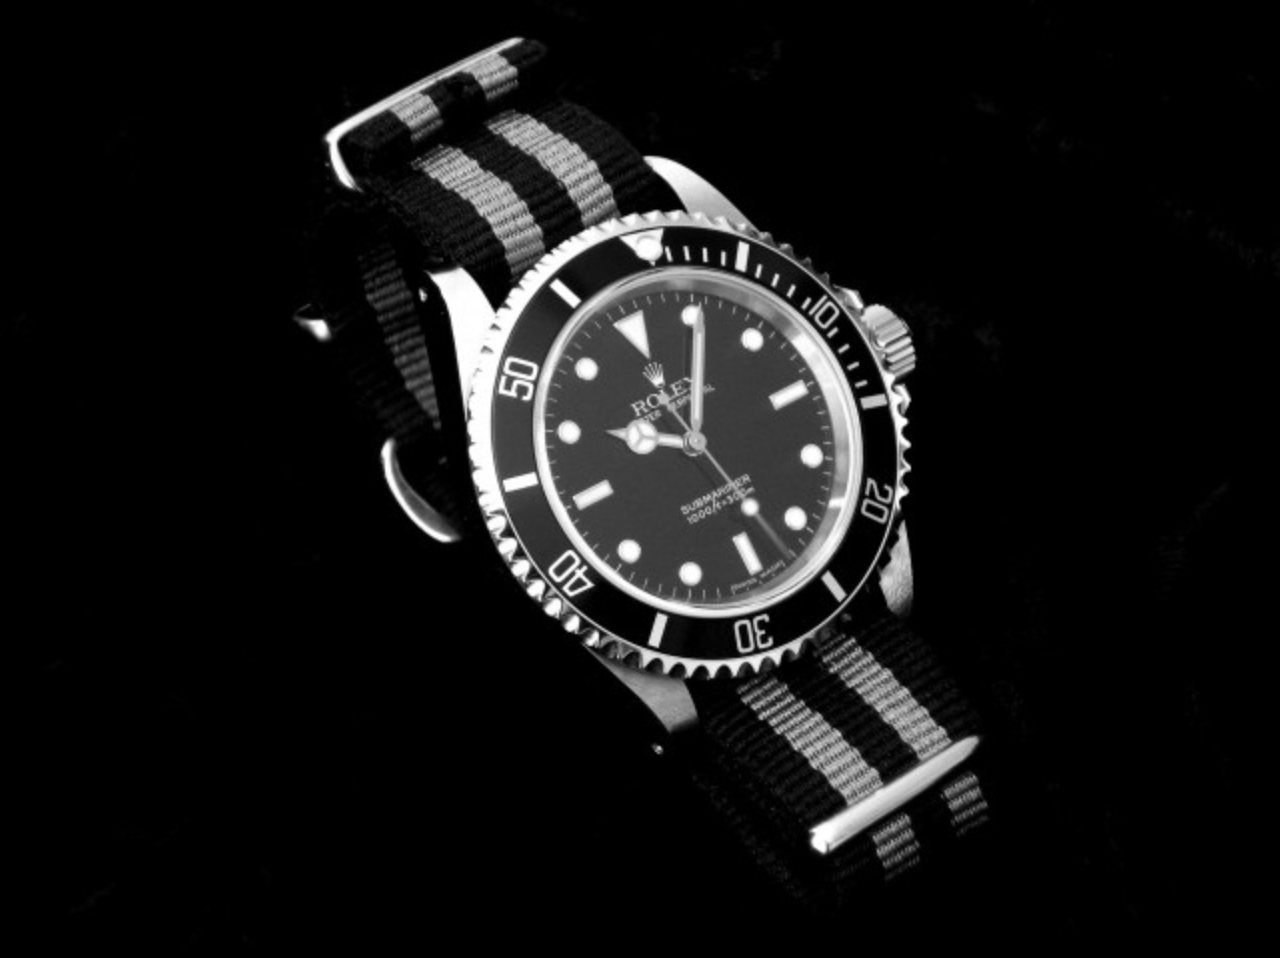 1 Watch 5 Ways: The Rolex Submariner on rubber, leather and NATO straps